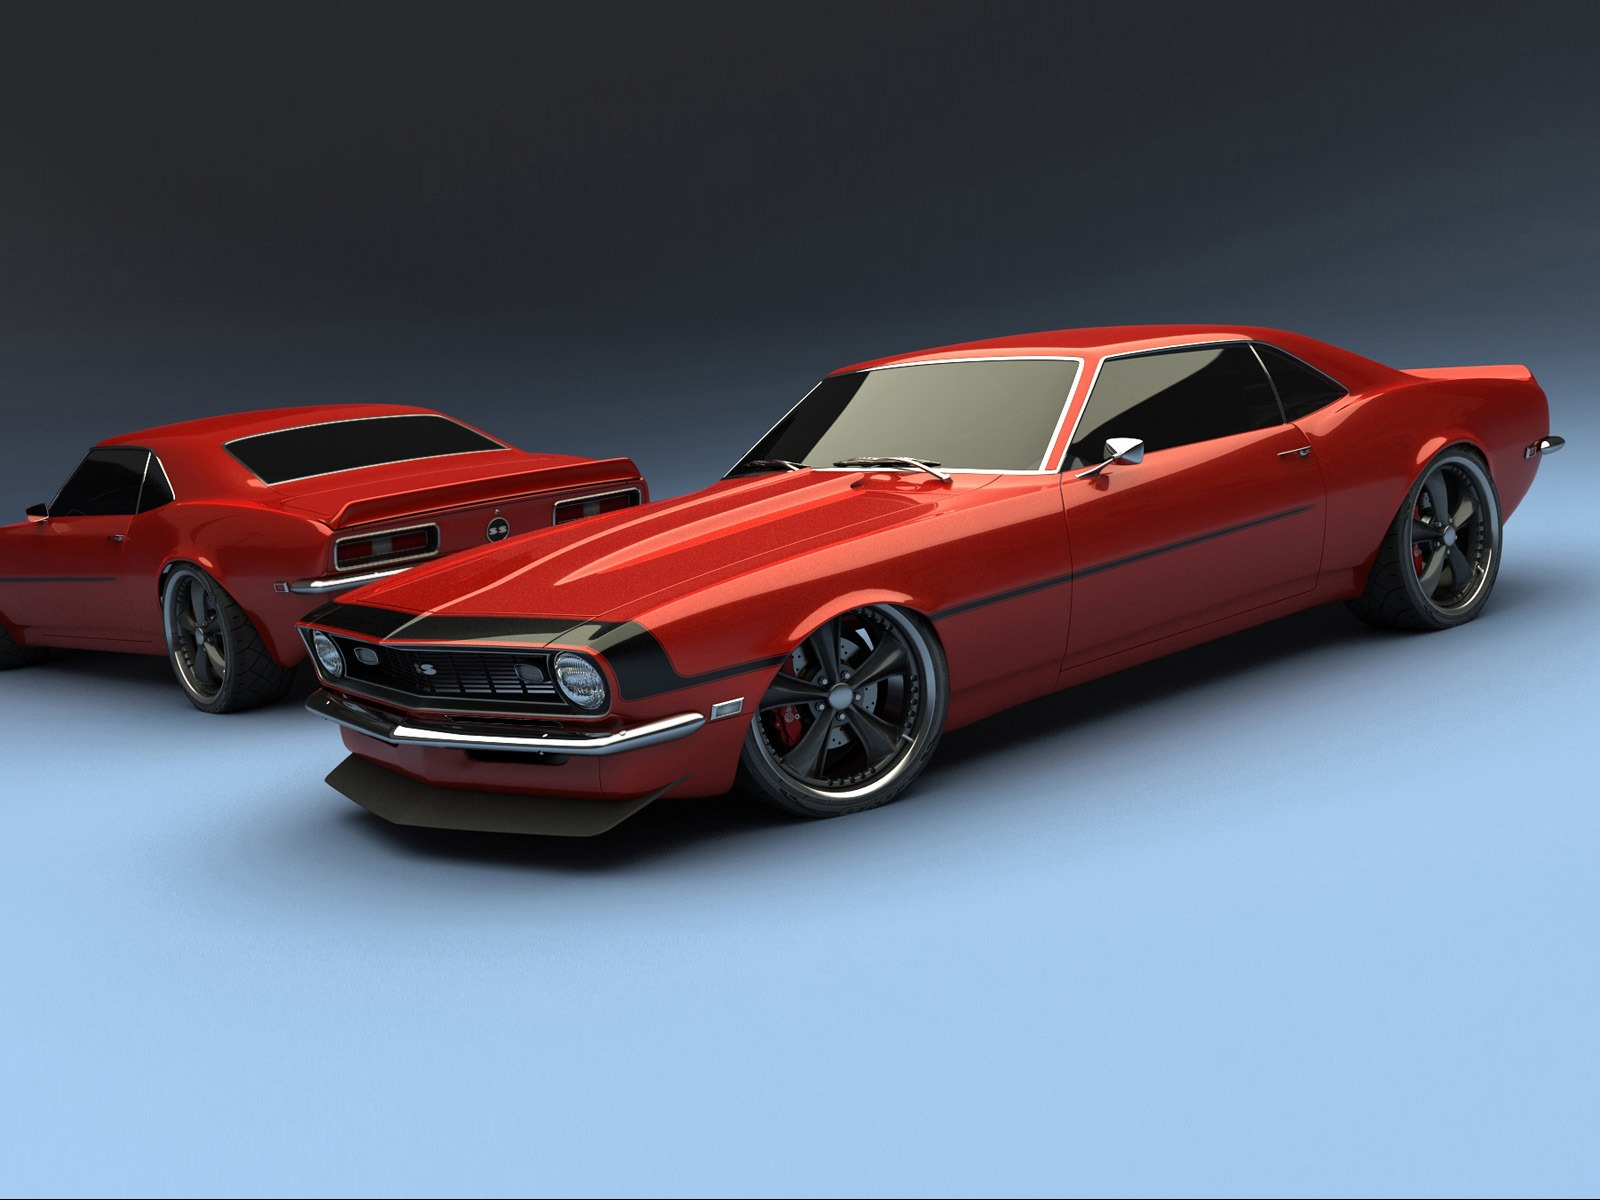 Chevrolet Camaro Ss Wallpaper Cars Wallpapers In 2015 Fuse Box 1600 1200 1280 800 1680 1050